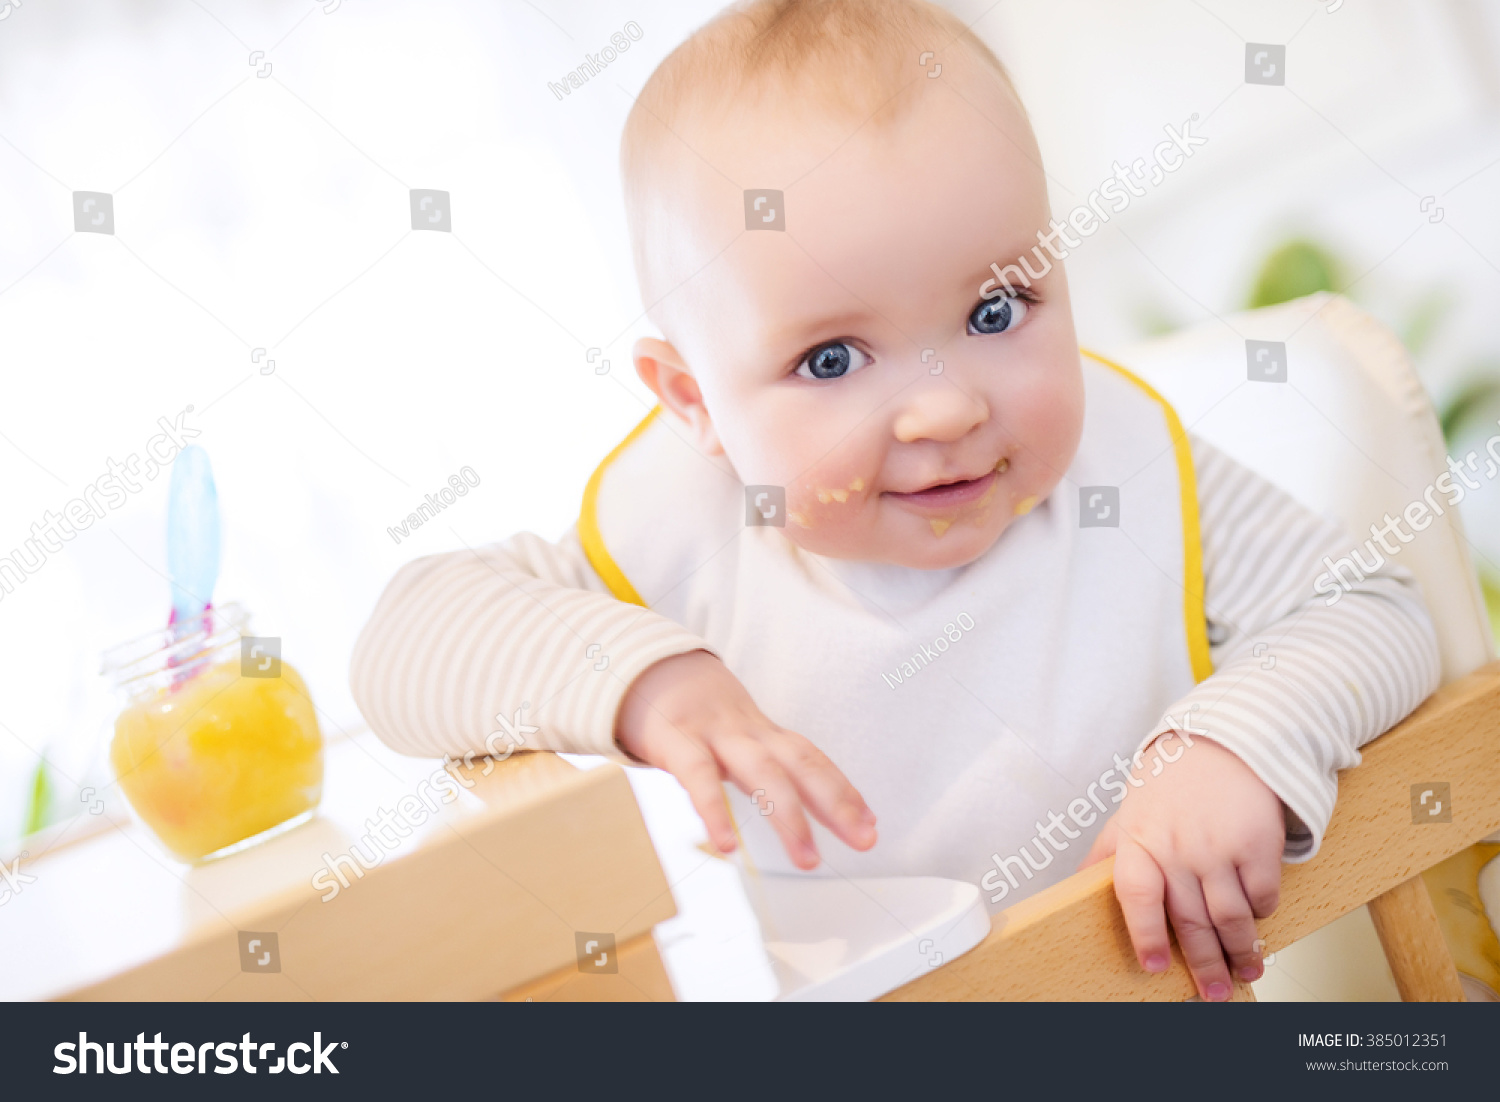 High Chair For Baby Boy Close Baby Boy High Chair Looking Stock Photo 385012351